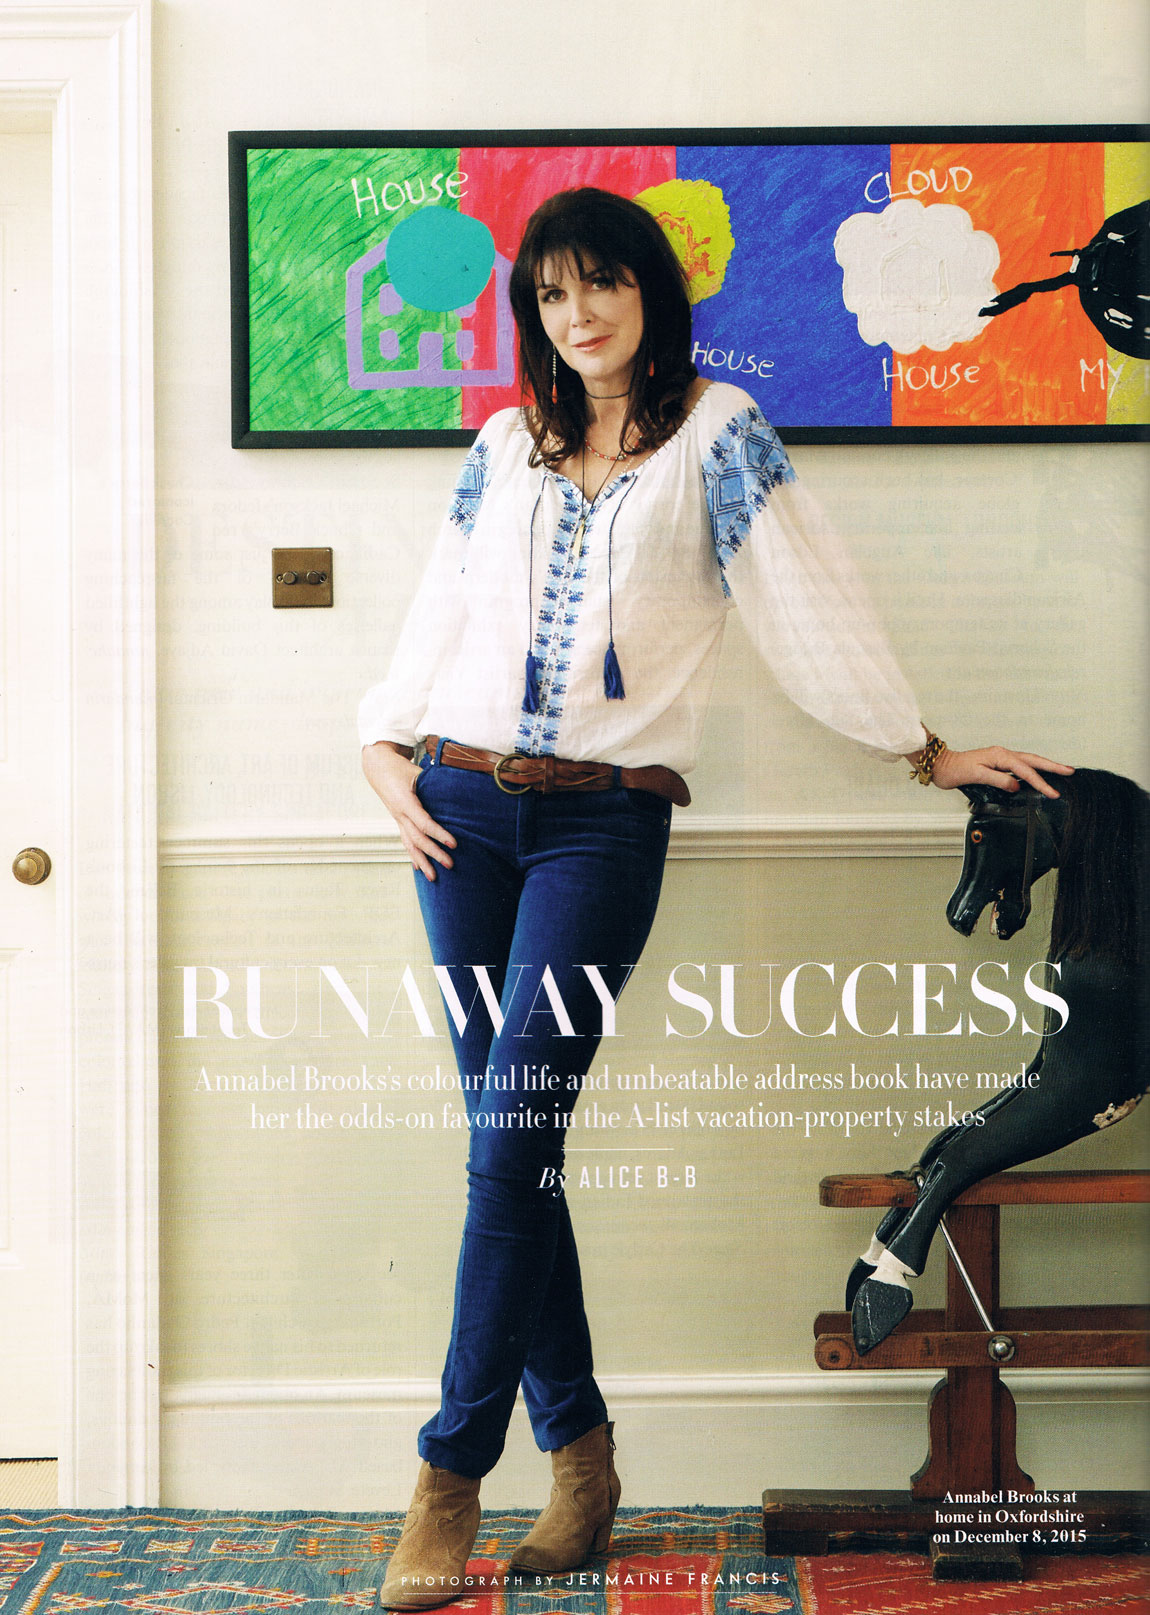 Annabel Brooks, owner of Avenue Property leaning on rocking horse